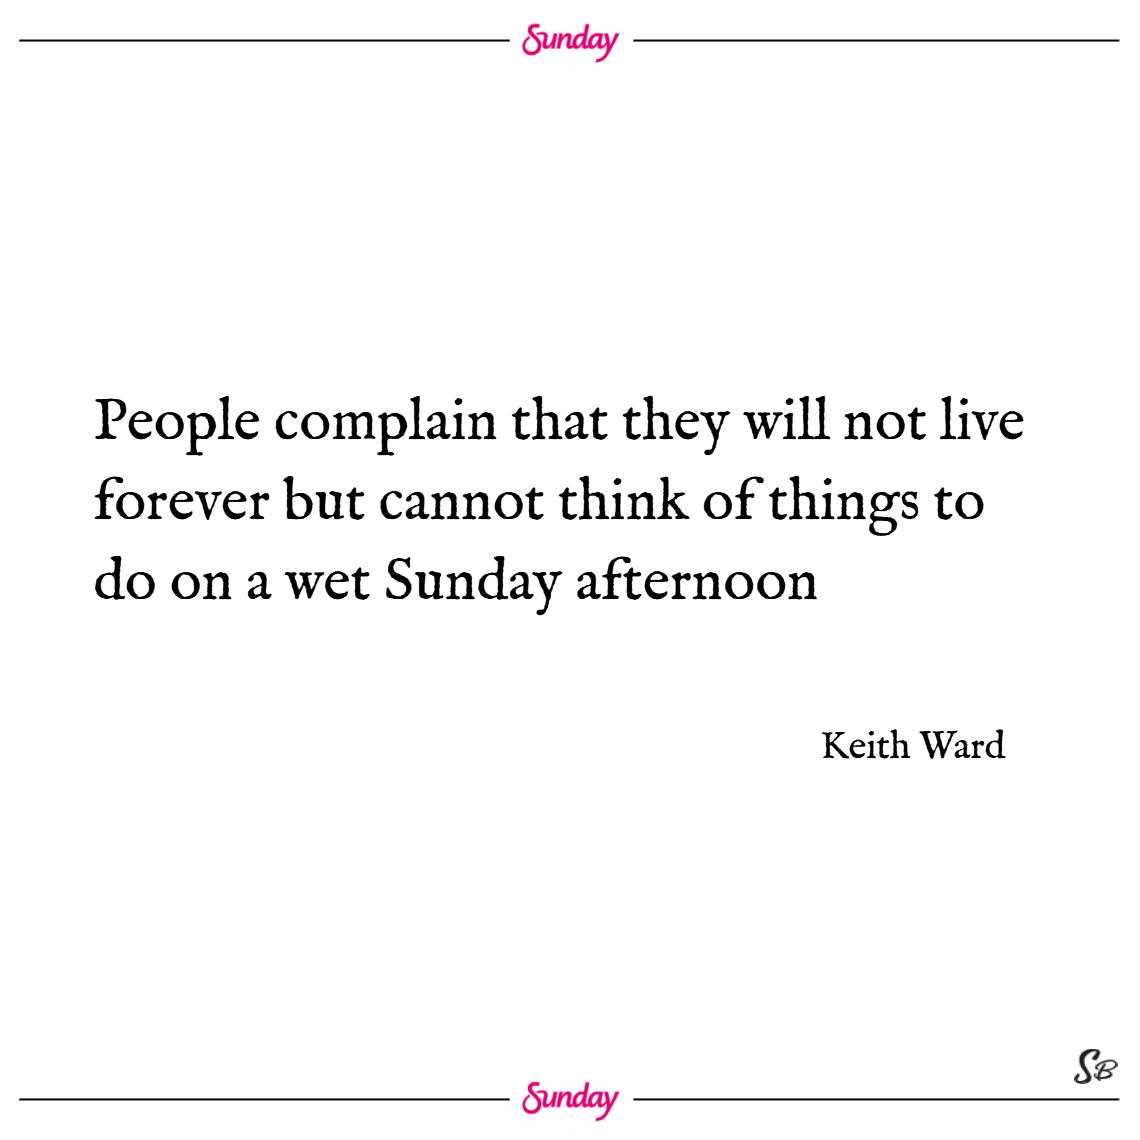 People complain that they will not live forever but cannot think of things to do on a wet sunday afternoon. – keith ward